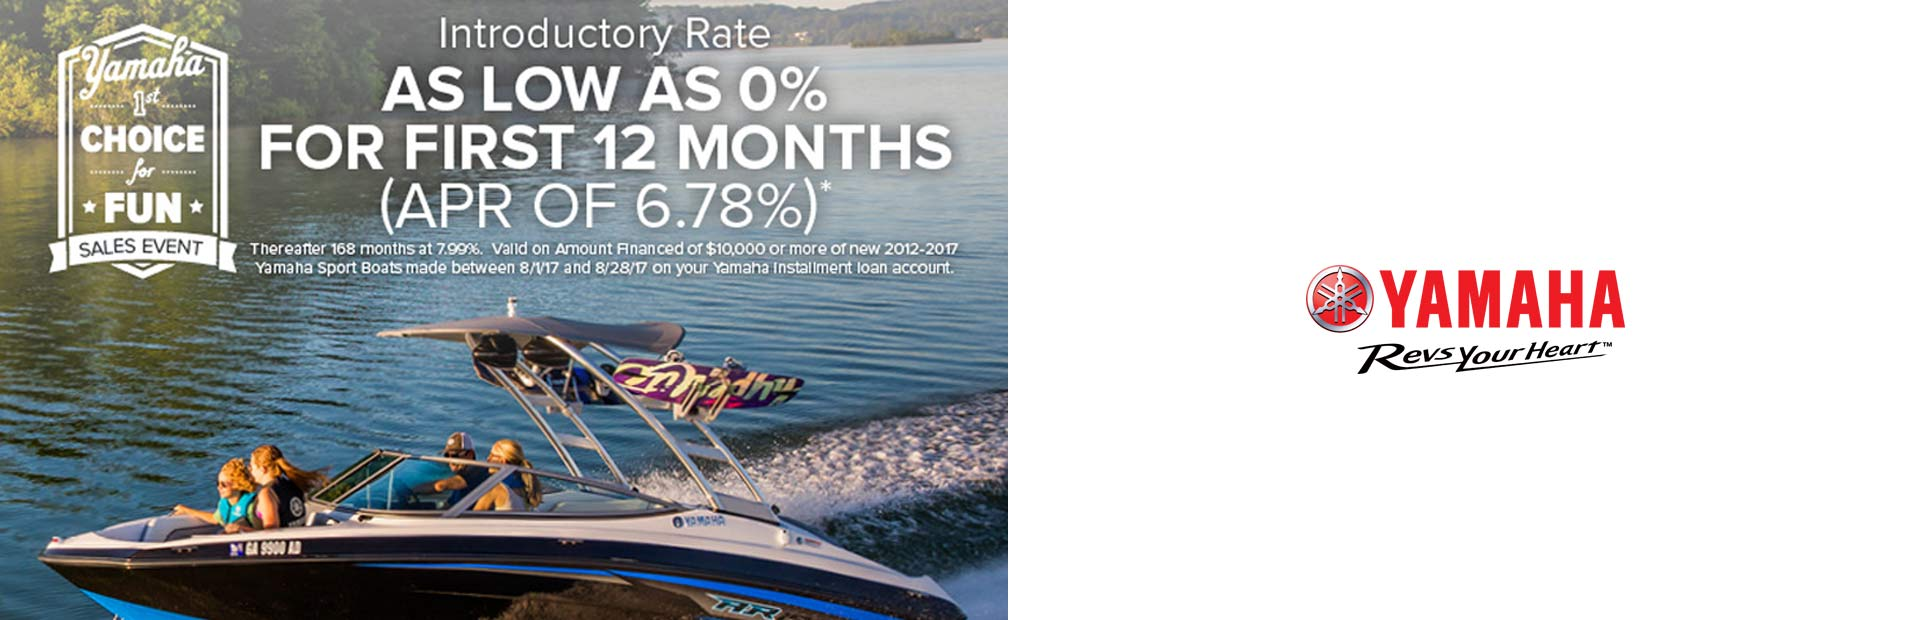 Yamaha: As Low As 0% For First 12 Months